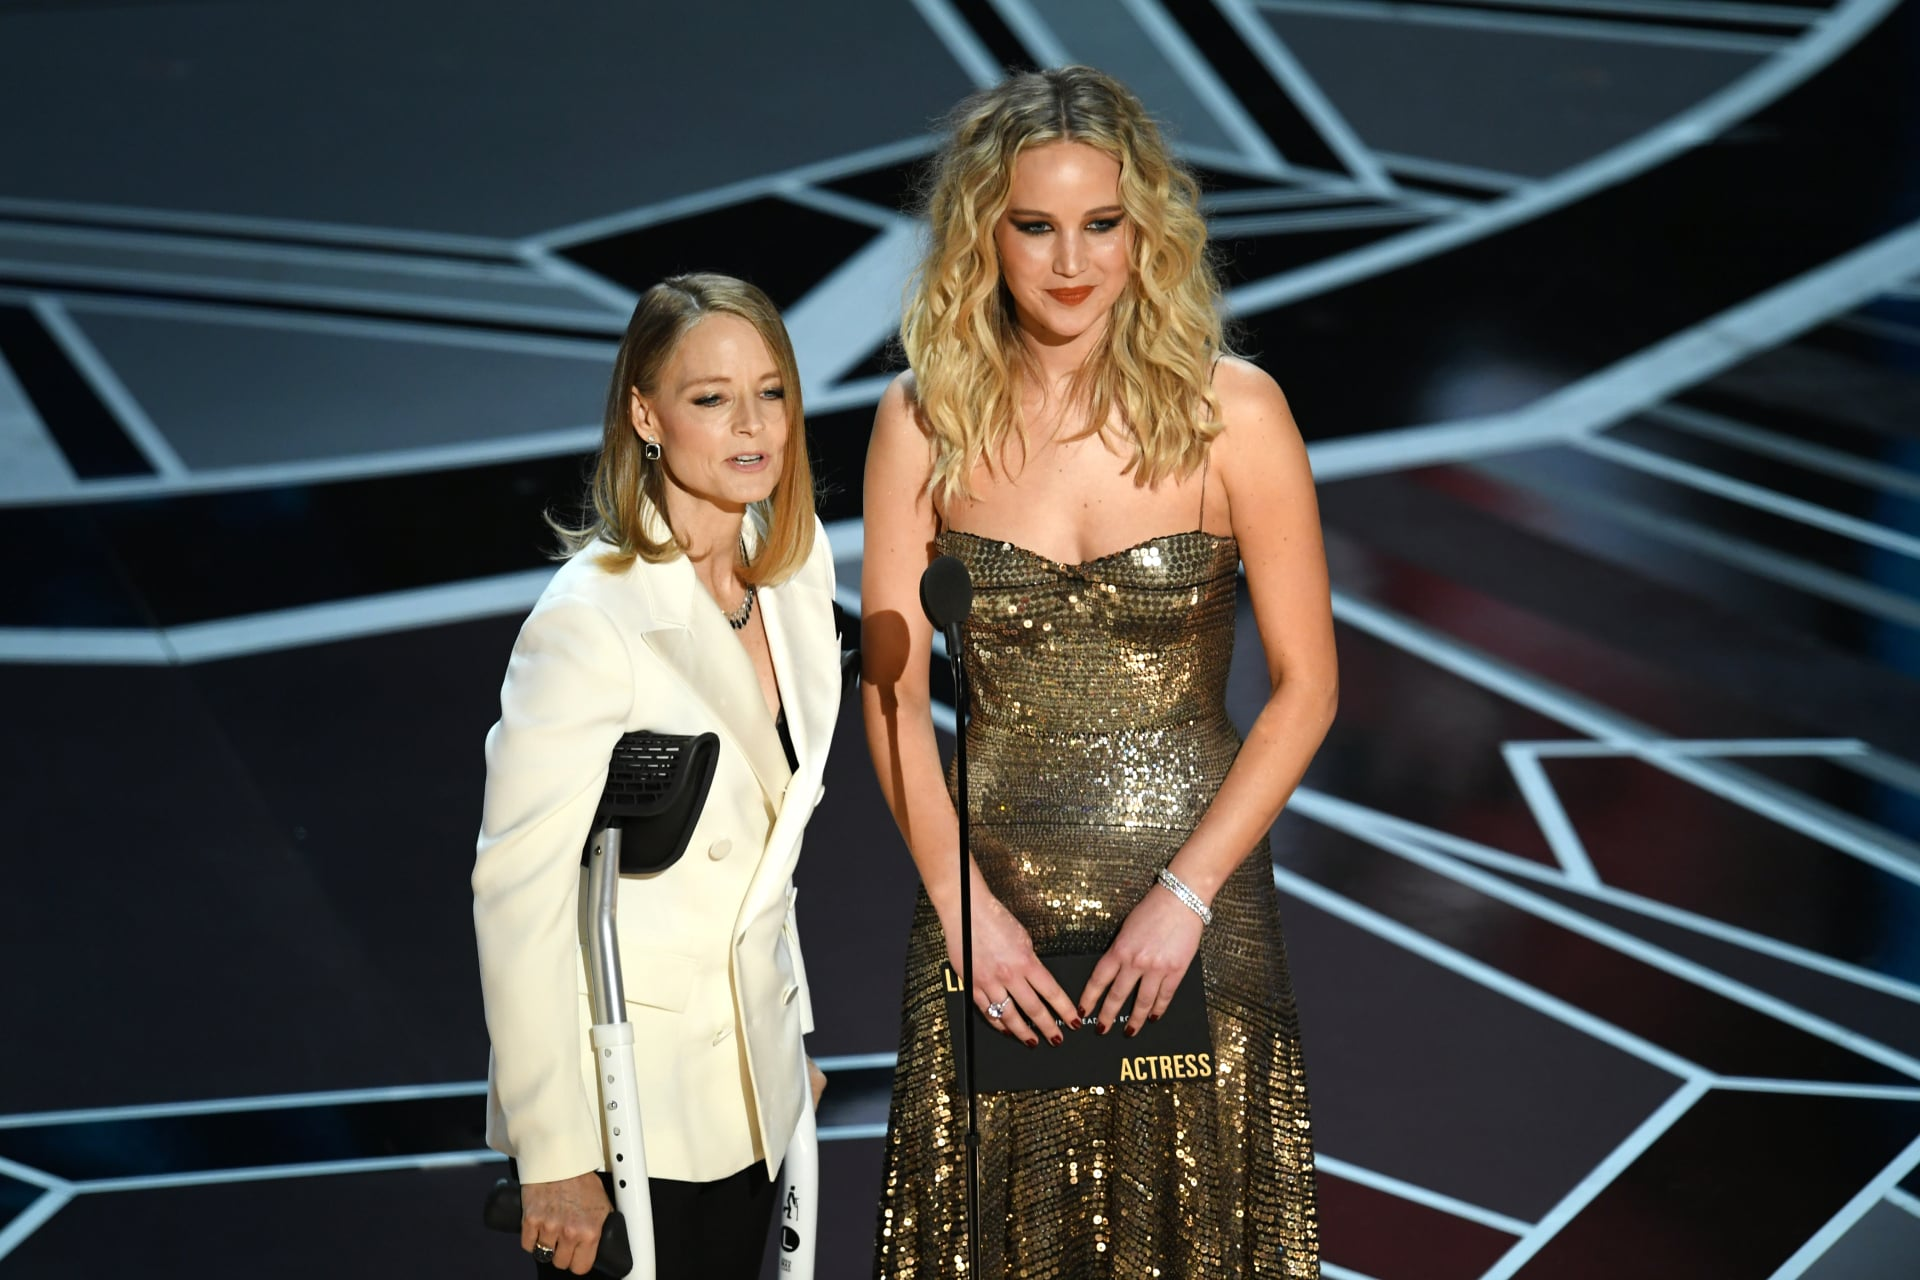 Jennifer Lawrence and Jodie Foster just presented the Best Actress Oscar instead of Casey Affleck